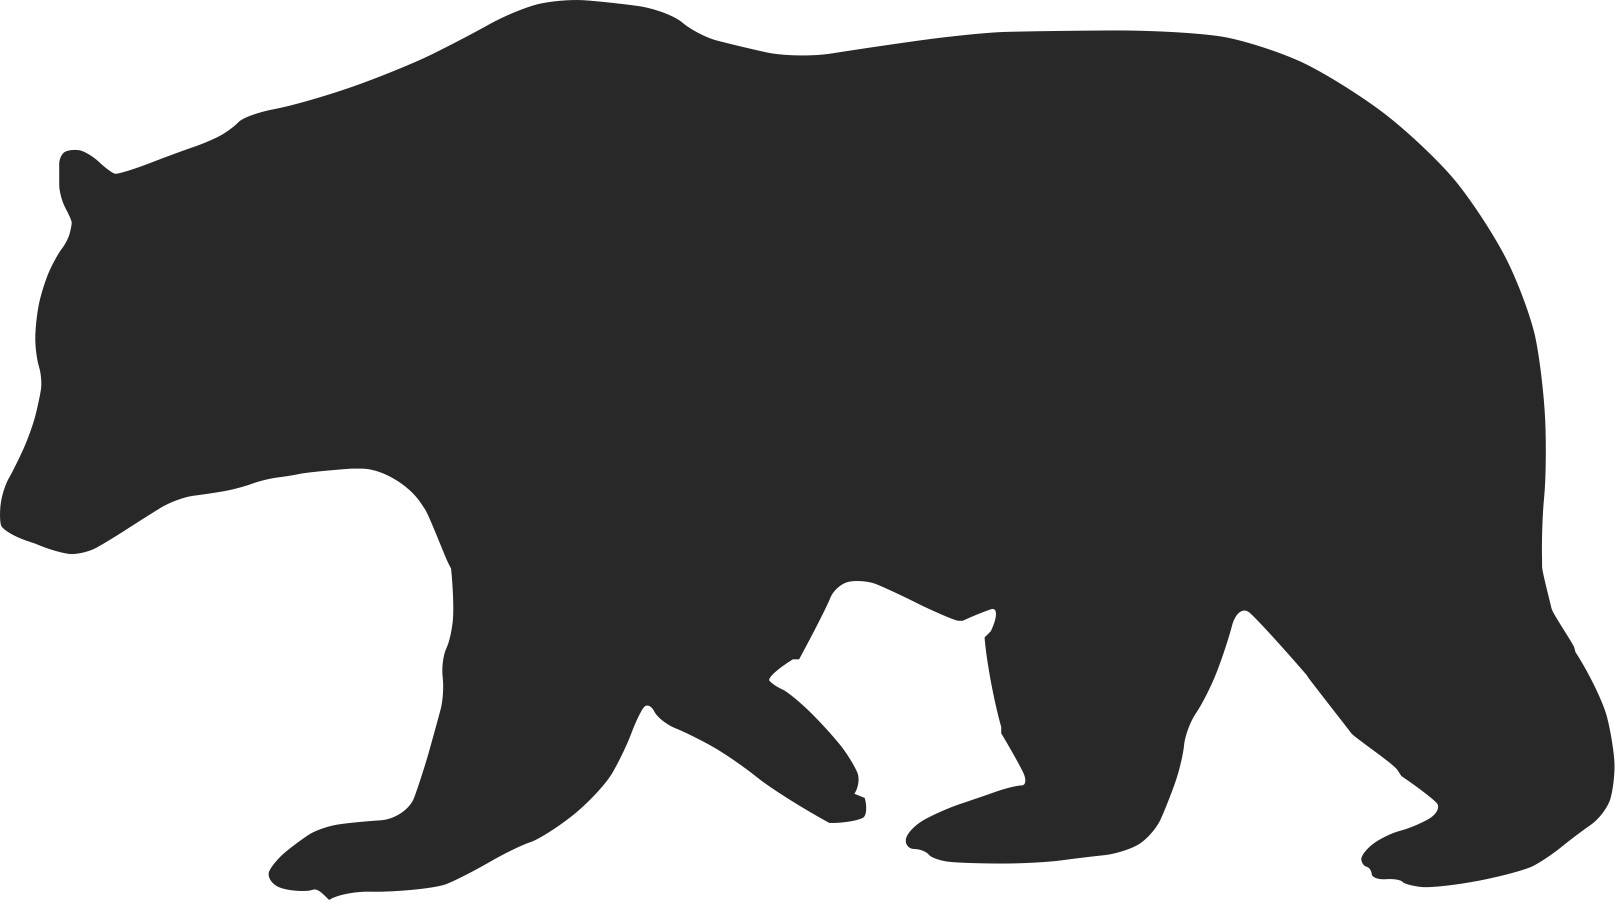 clipart freeuse stock Free black pattern download. Bear silhouette clipart